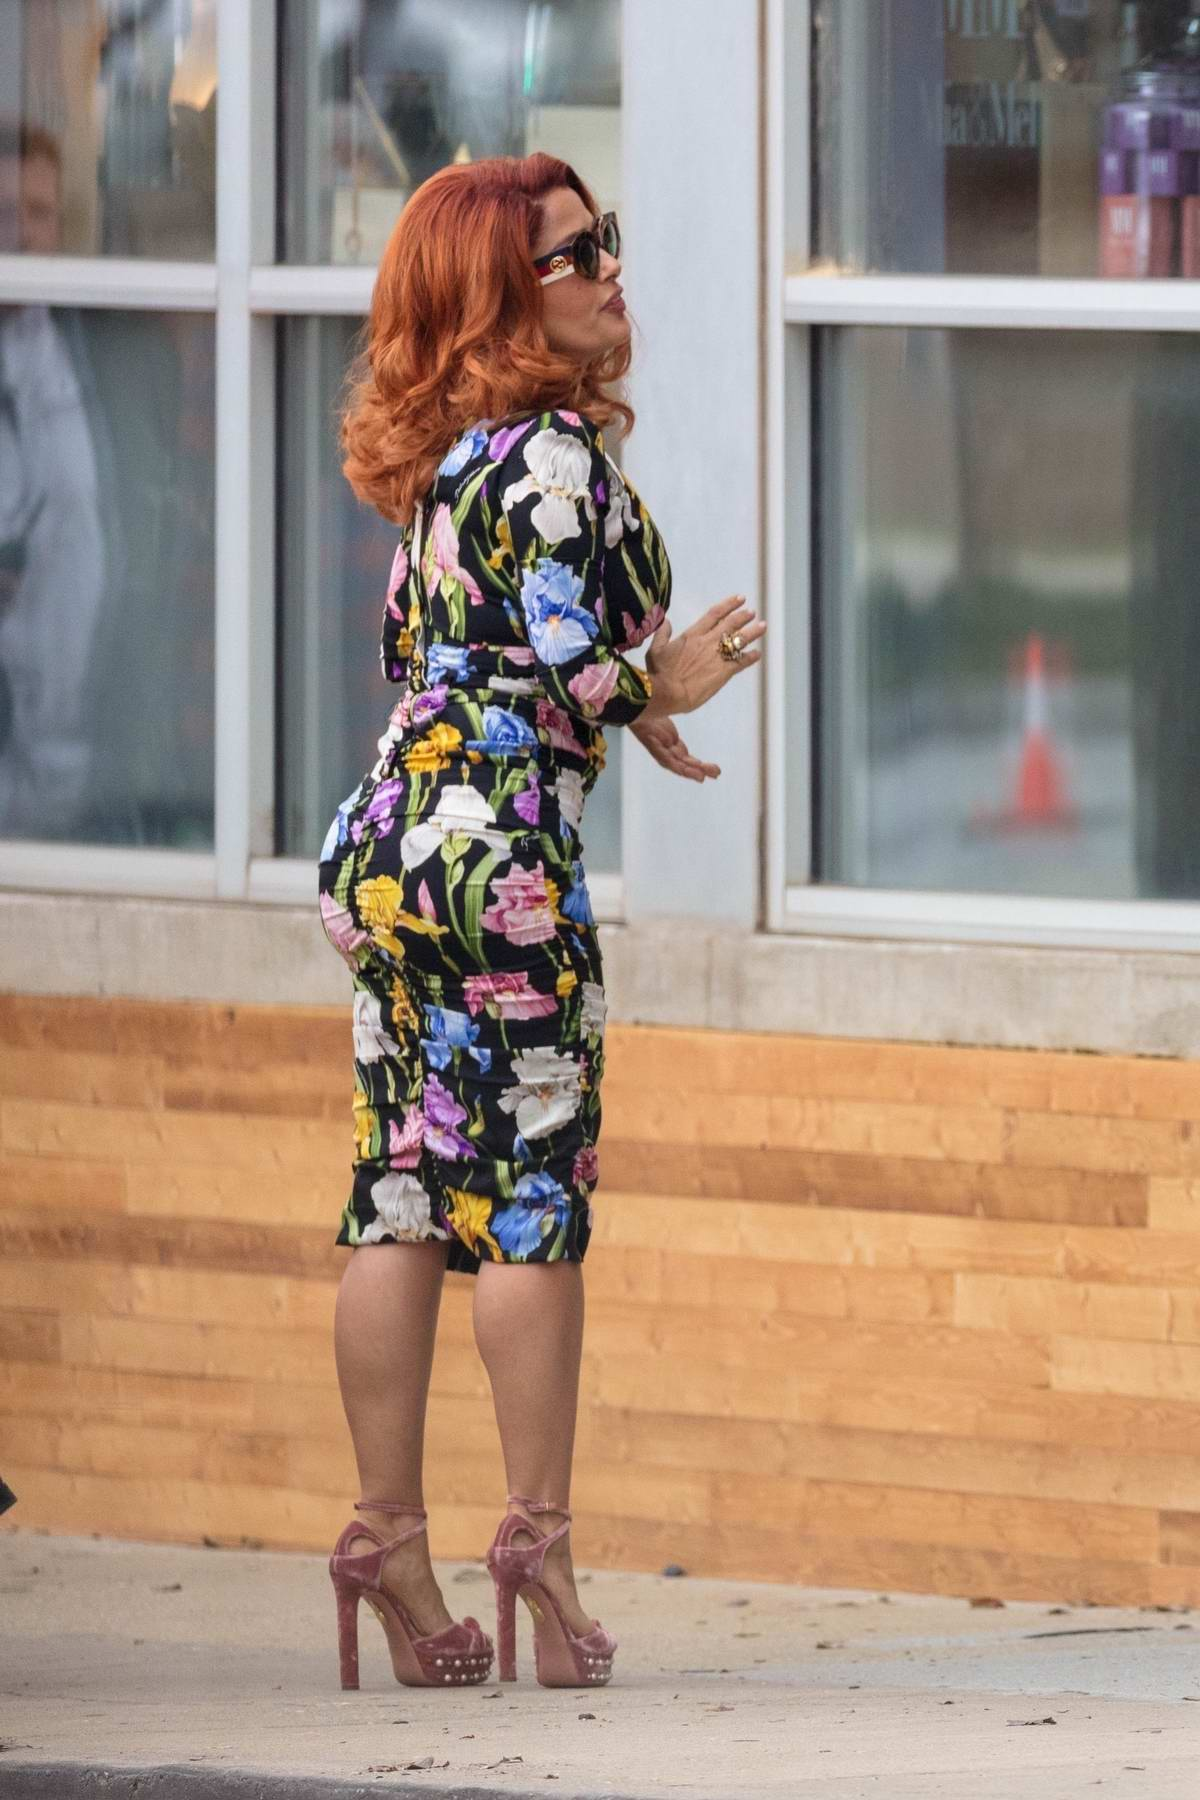 Salma Hayek spotted in a redhead look while wearing a floral dress on the set of 'Limited Partners' in Atlanta, Georgia